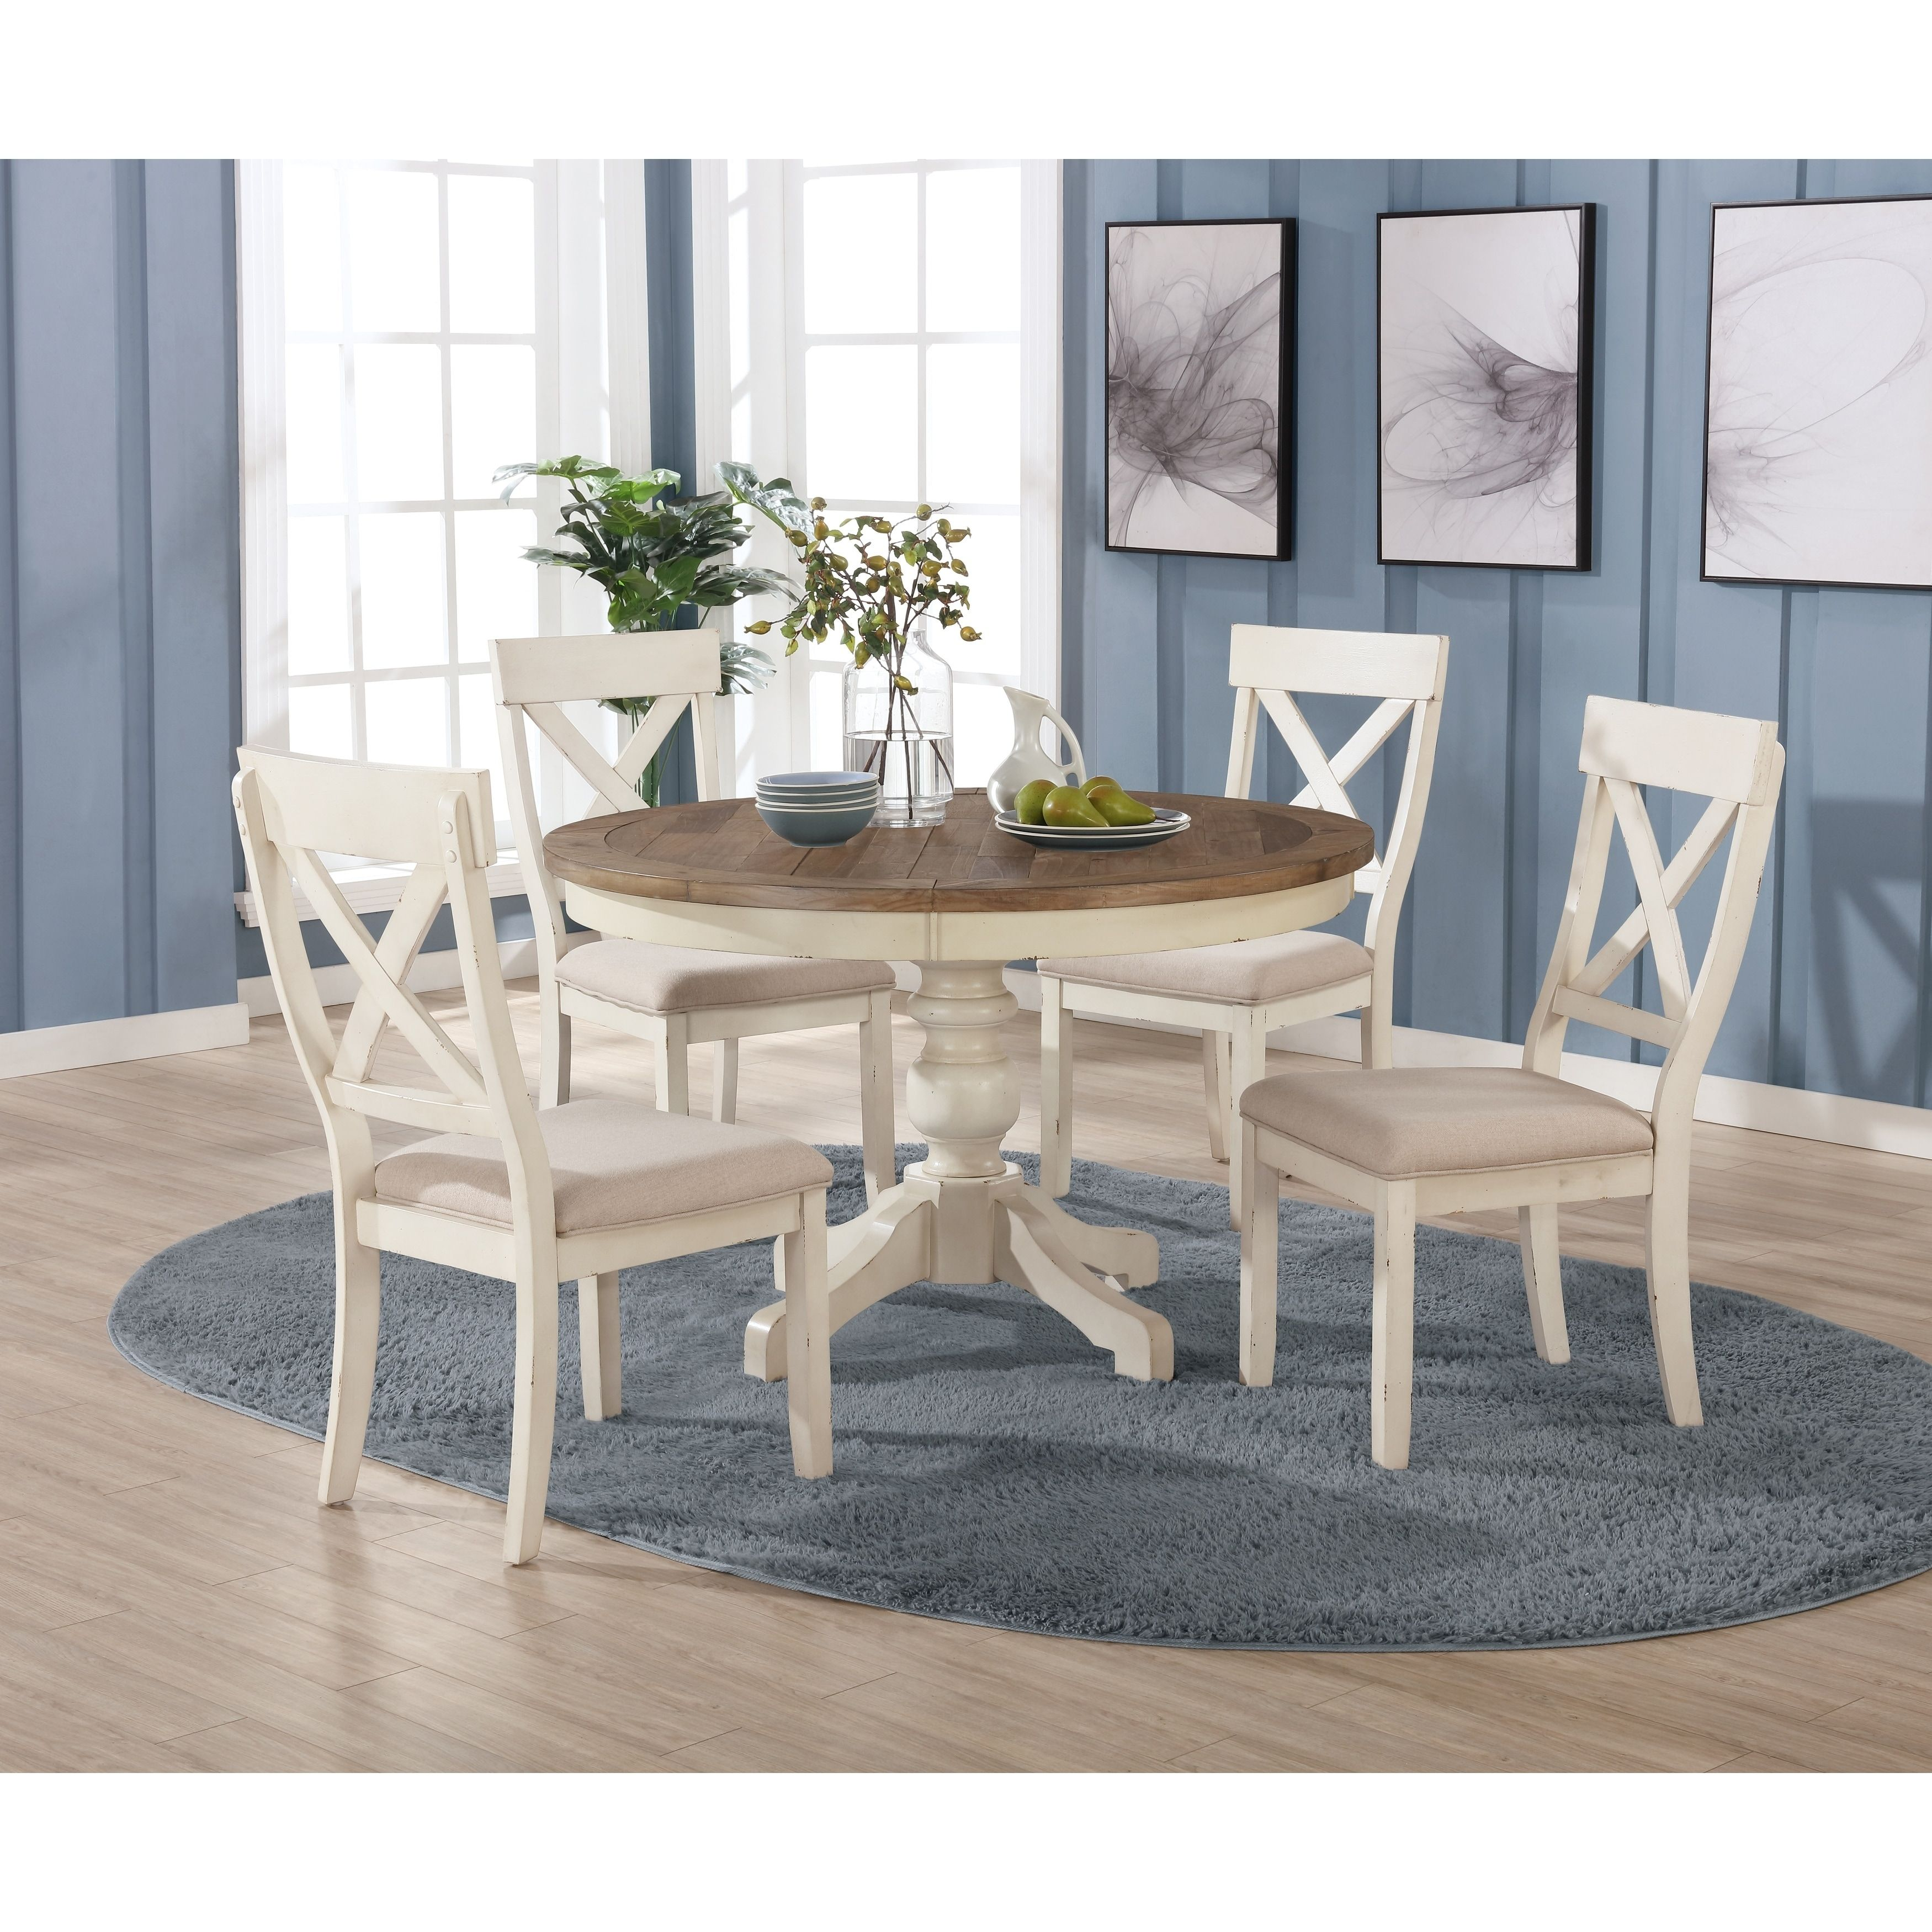 Pin On Round Dining Table Sets